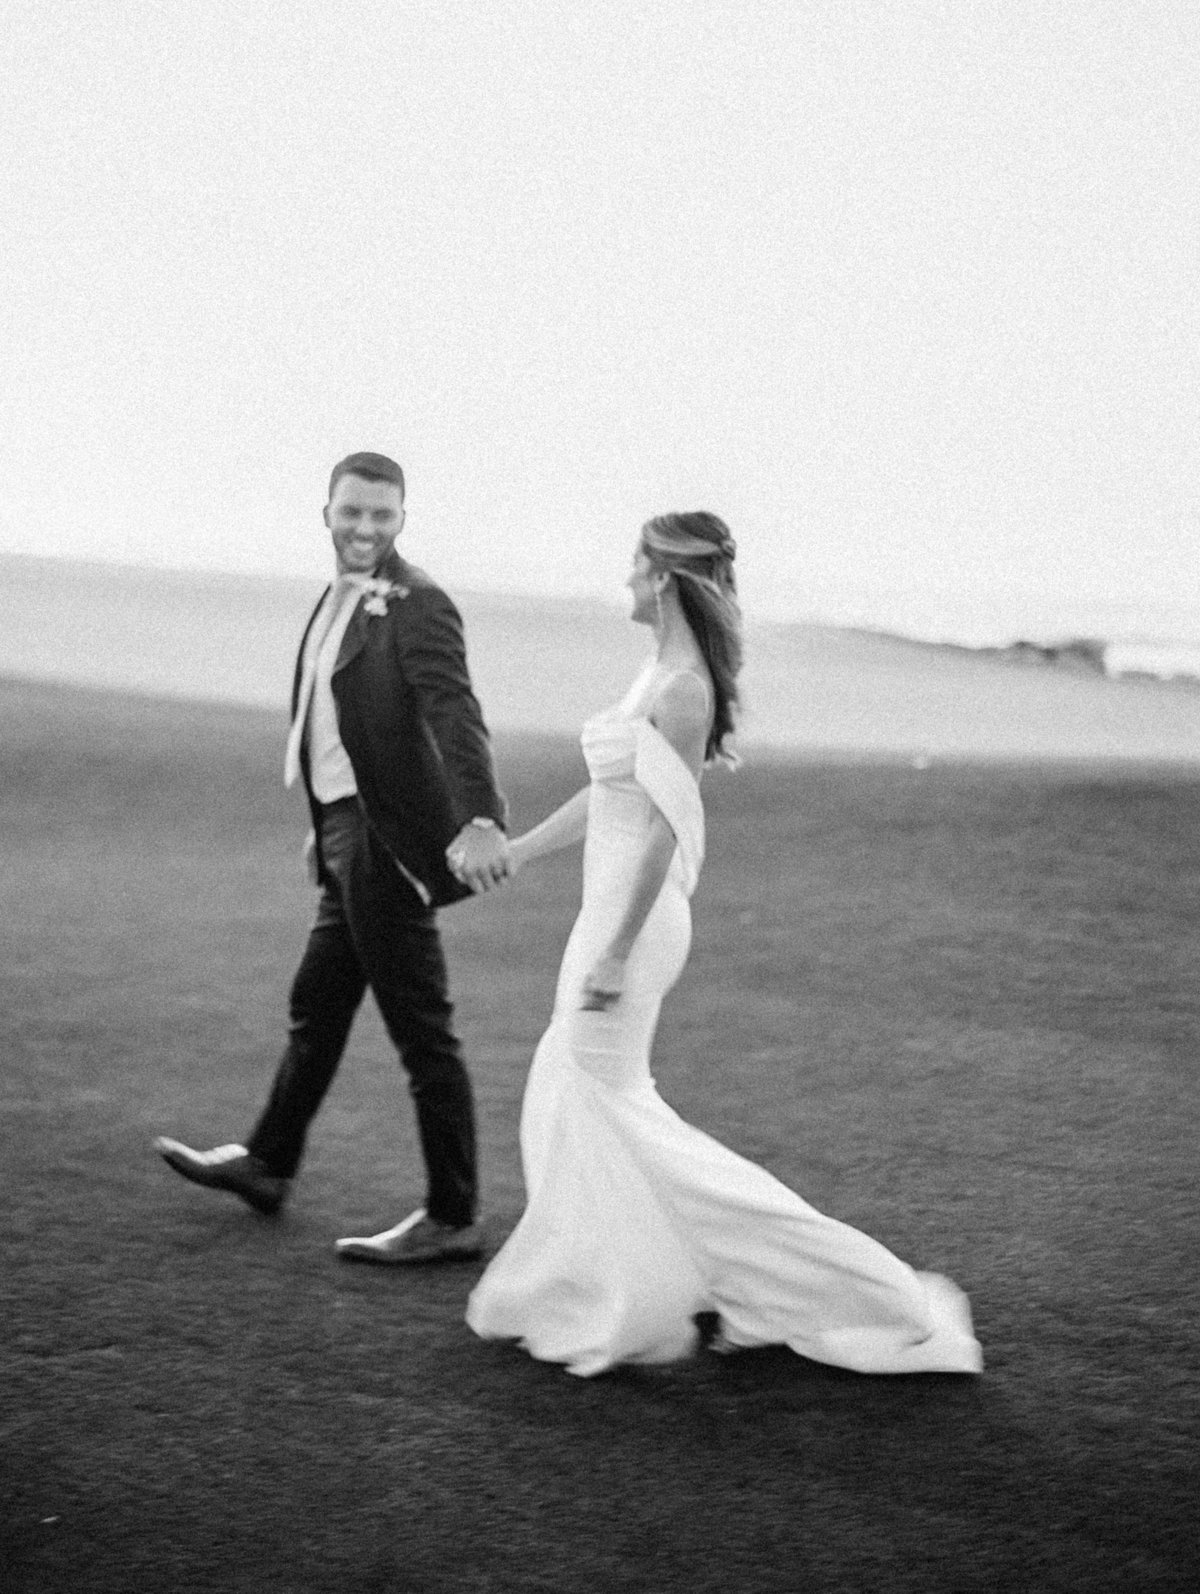 natalie bray, fine art wedding photographer -1-2